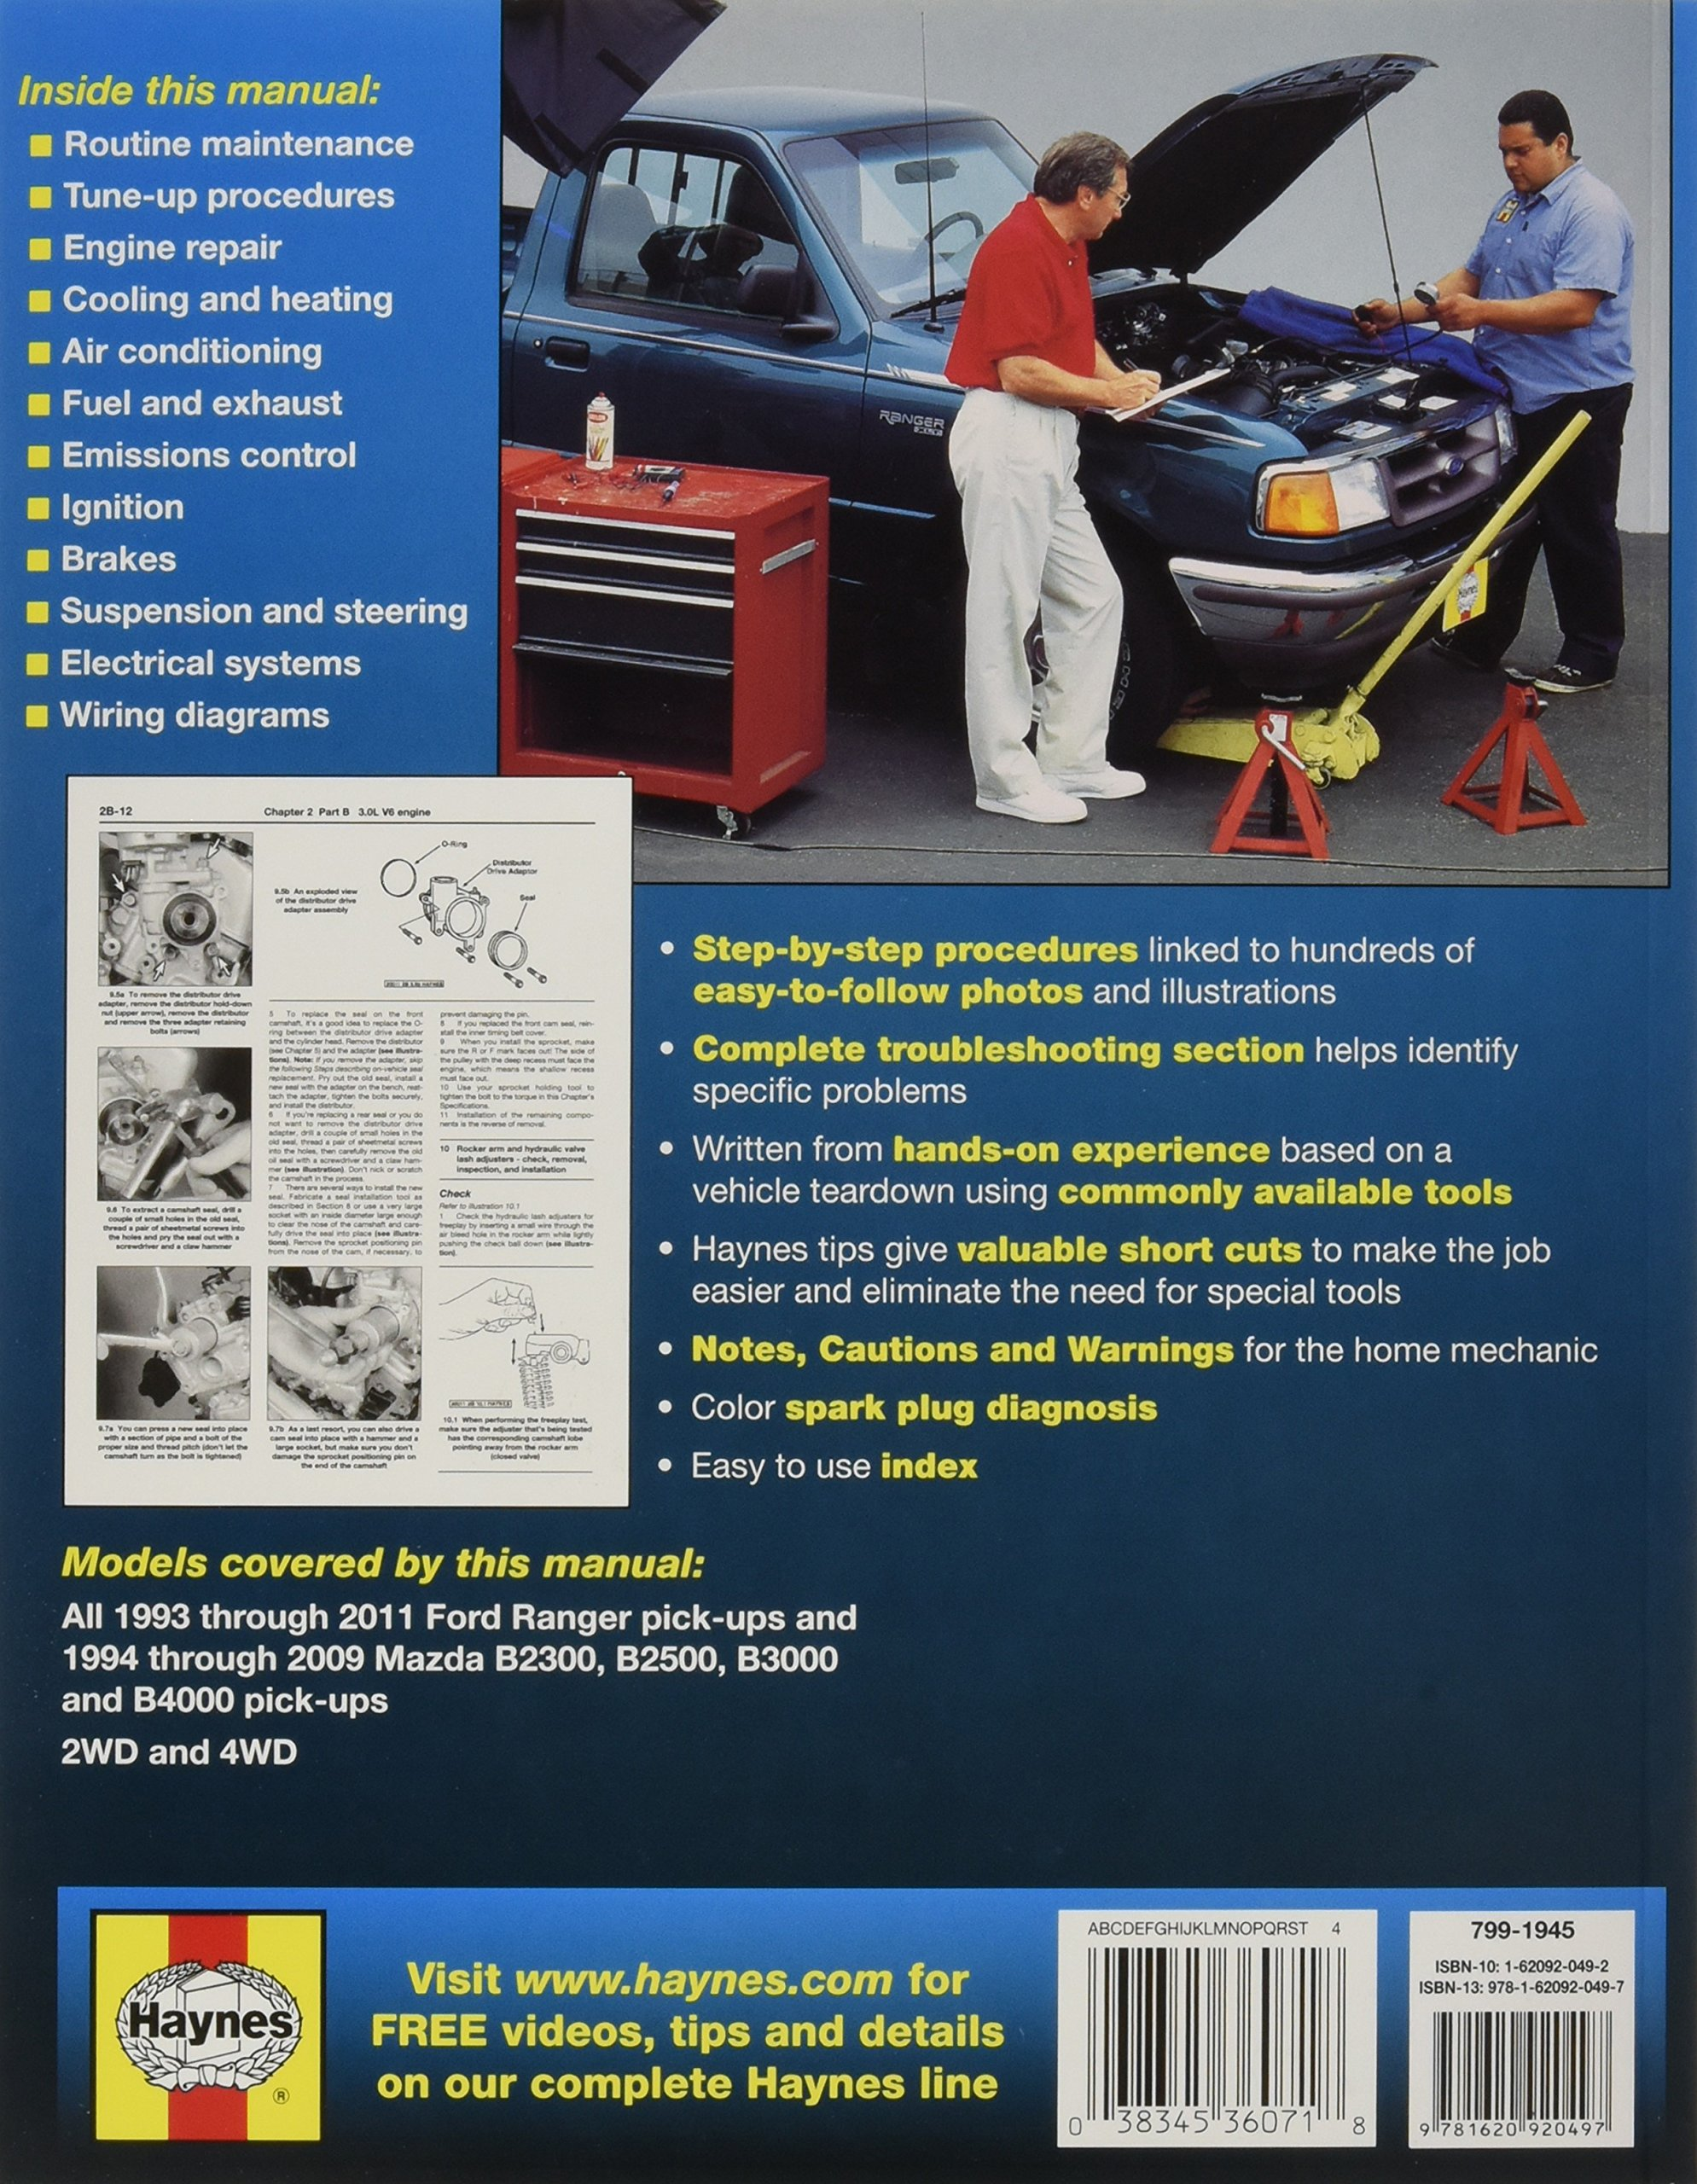 Haynes Repair Manual: Ford Ranger Pick-Ups 1993 thru 2011, also includes  1994 thru 2009 Mazda B2300, B2500, B3000, B4000: Editors of Haynes Manuals:  ...